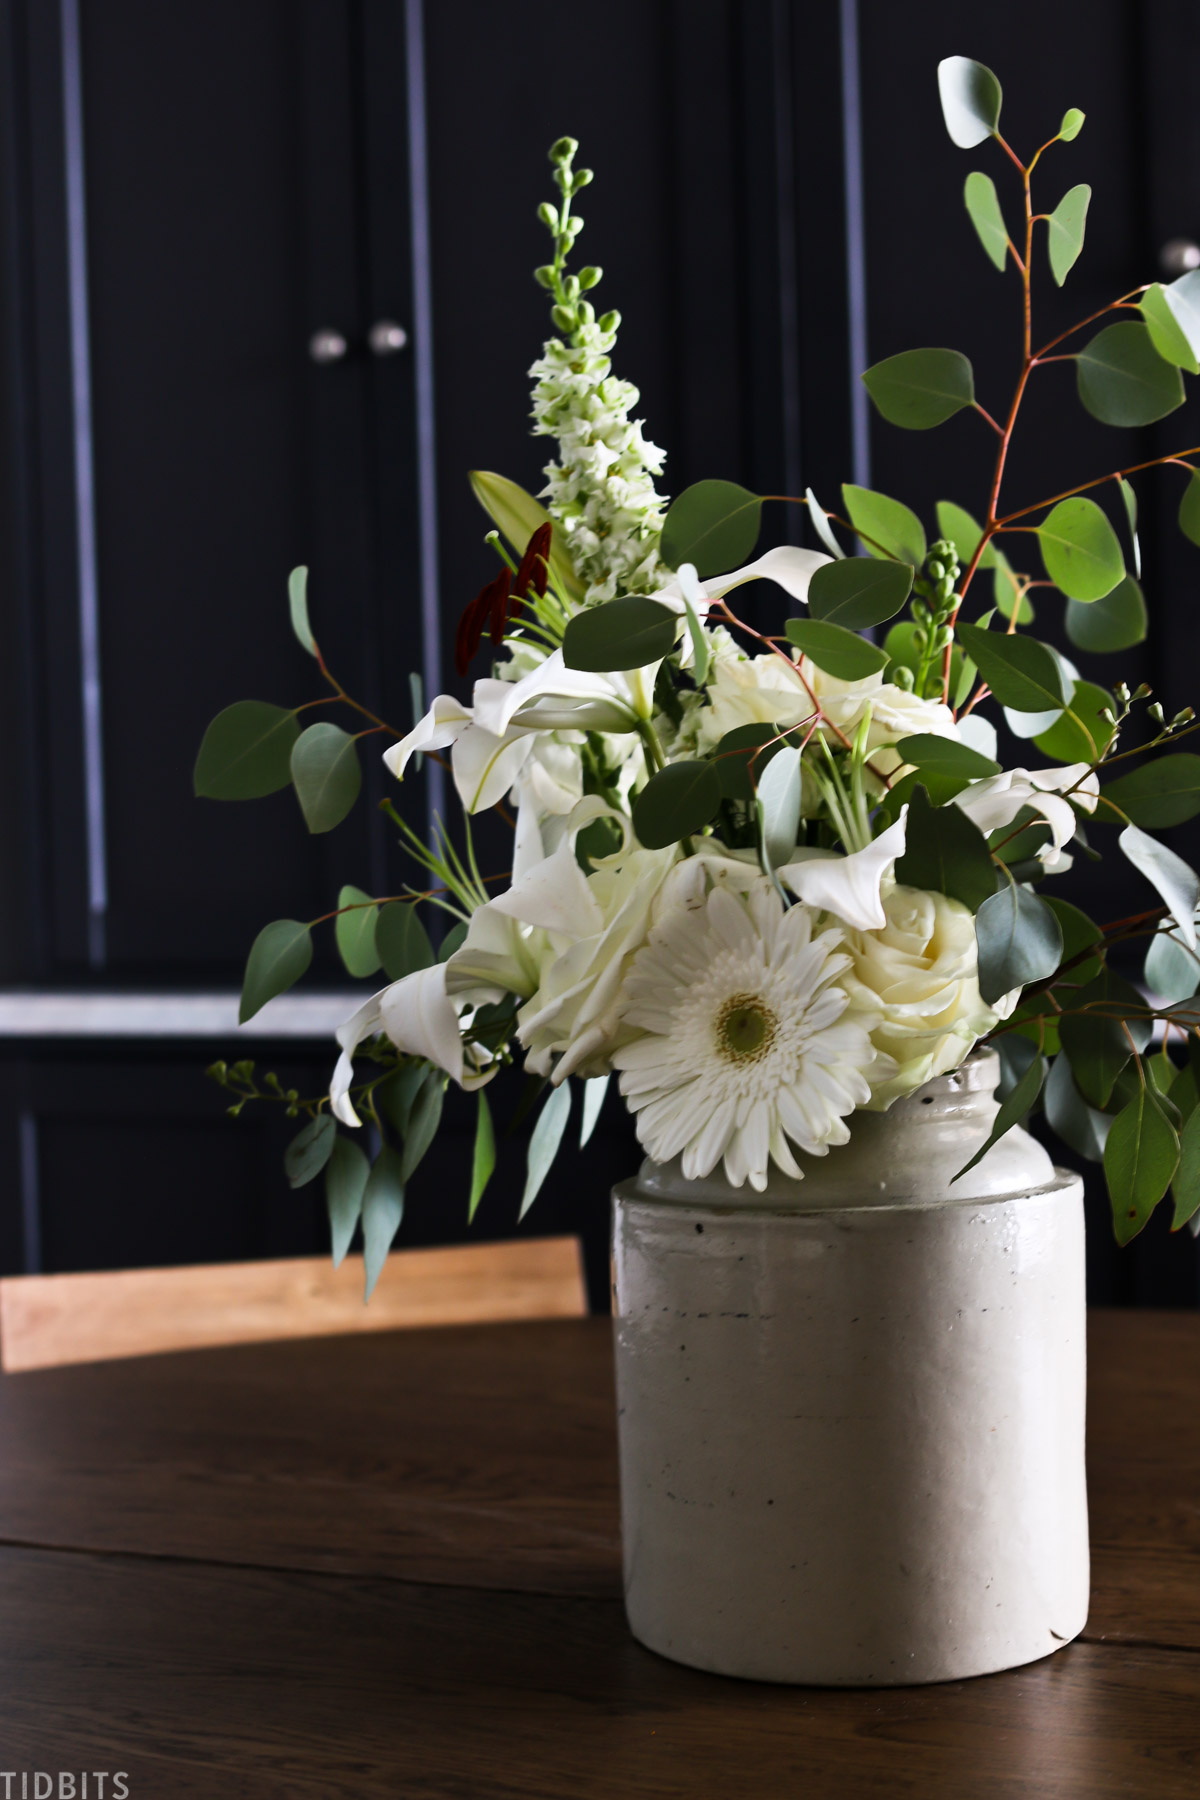 flowers placed in antique vase that's used as a centerpiece on a roundtable